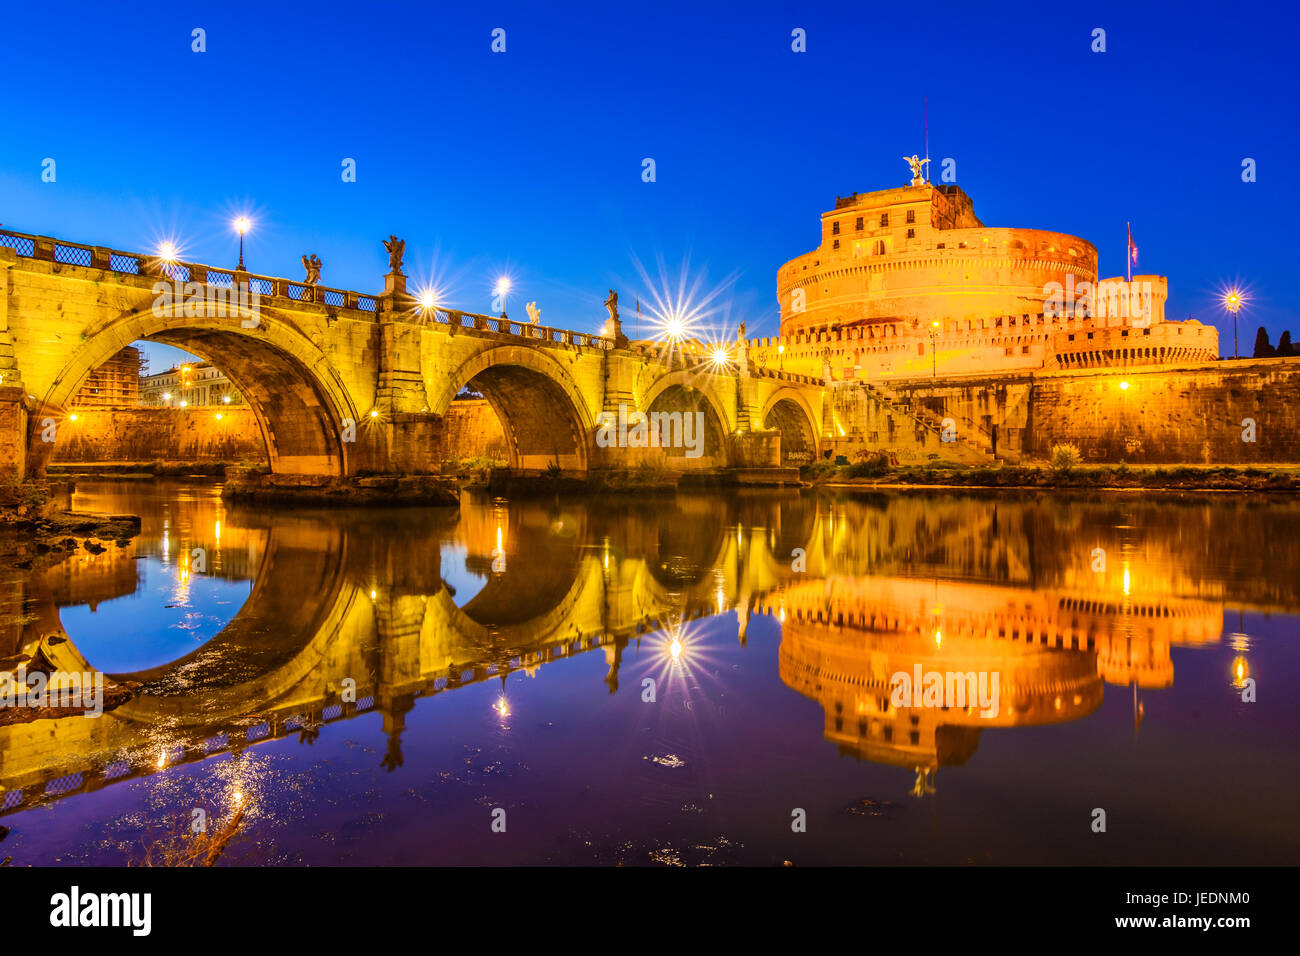 Night view over the Tiber river and the Sant'Angelo bridge - Stock Image